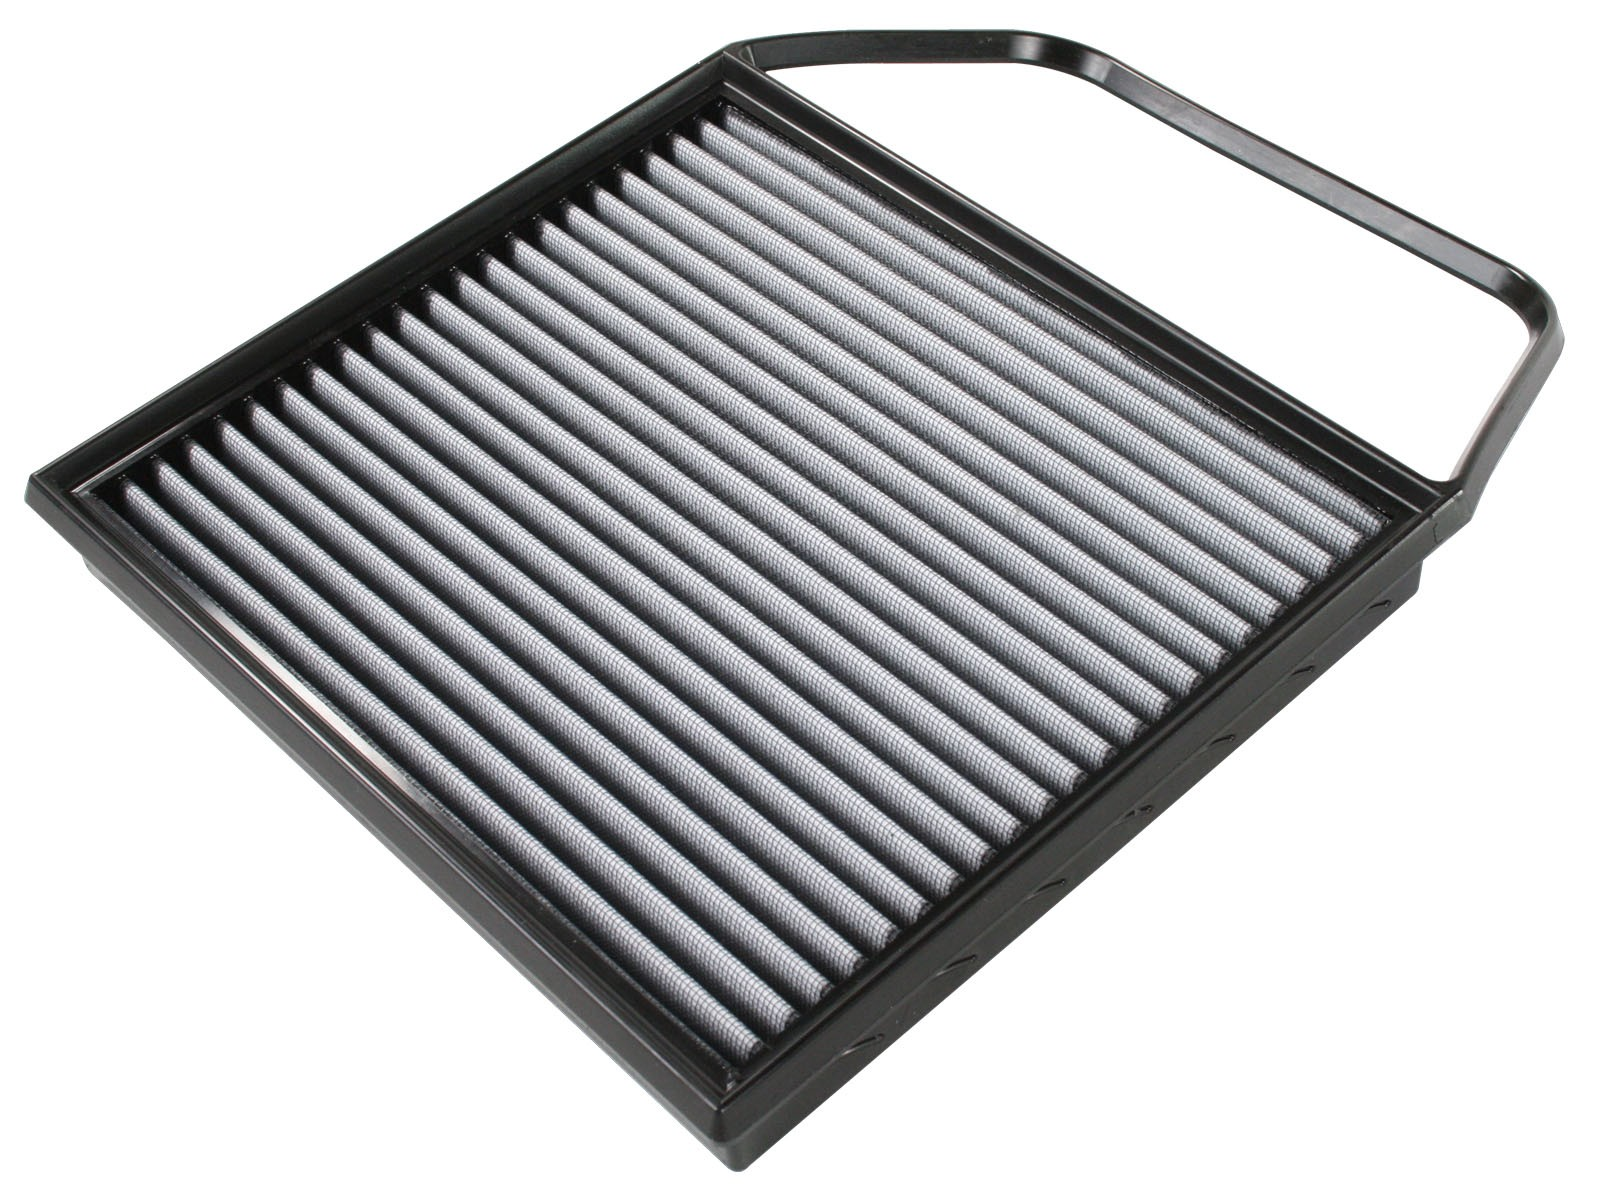 aFe POWER 31-10156 Magnum FLOW Pro DRY S Air Filter